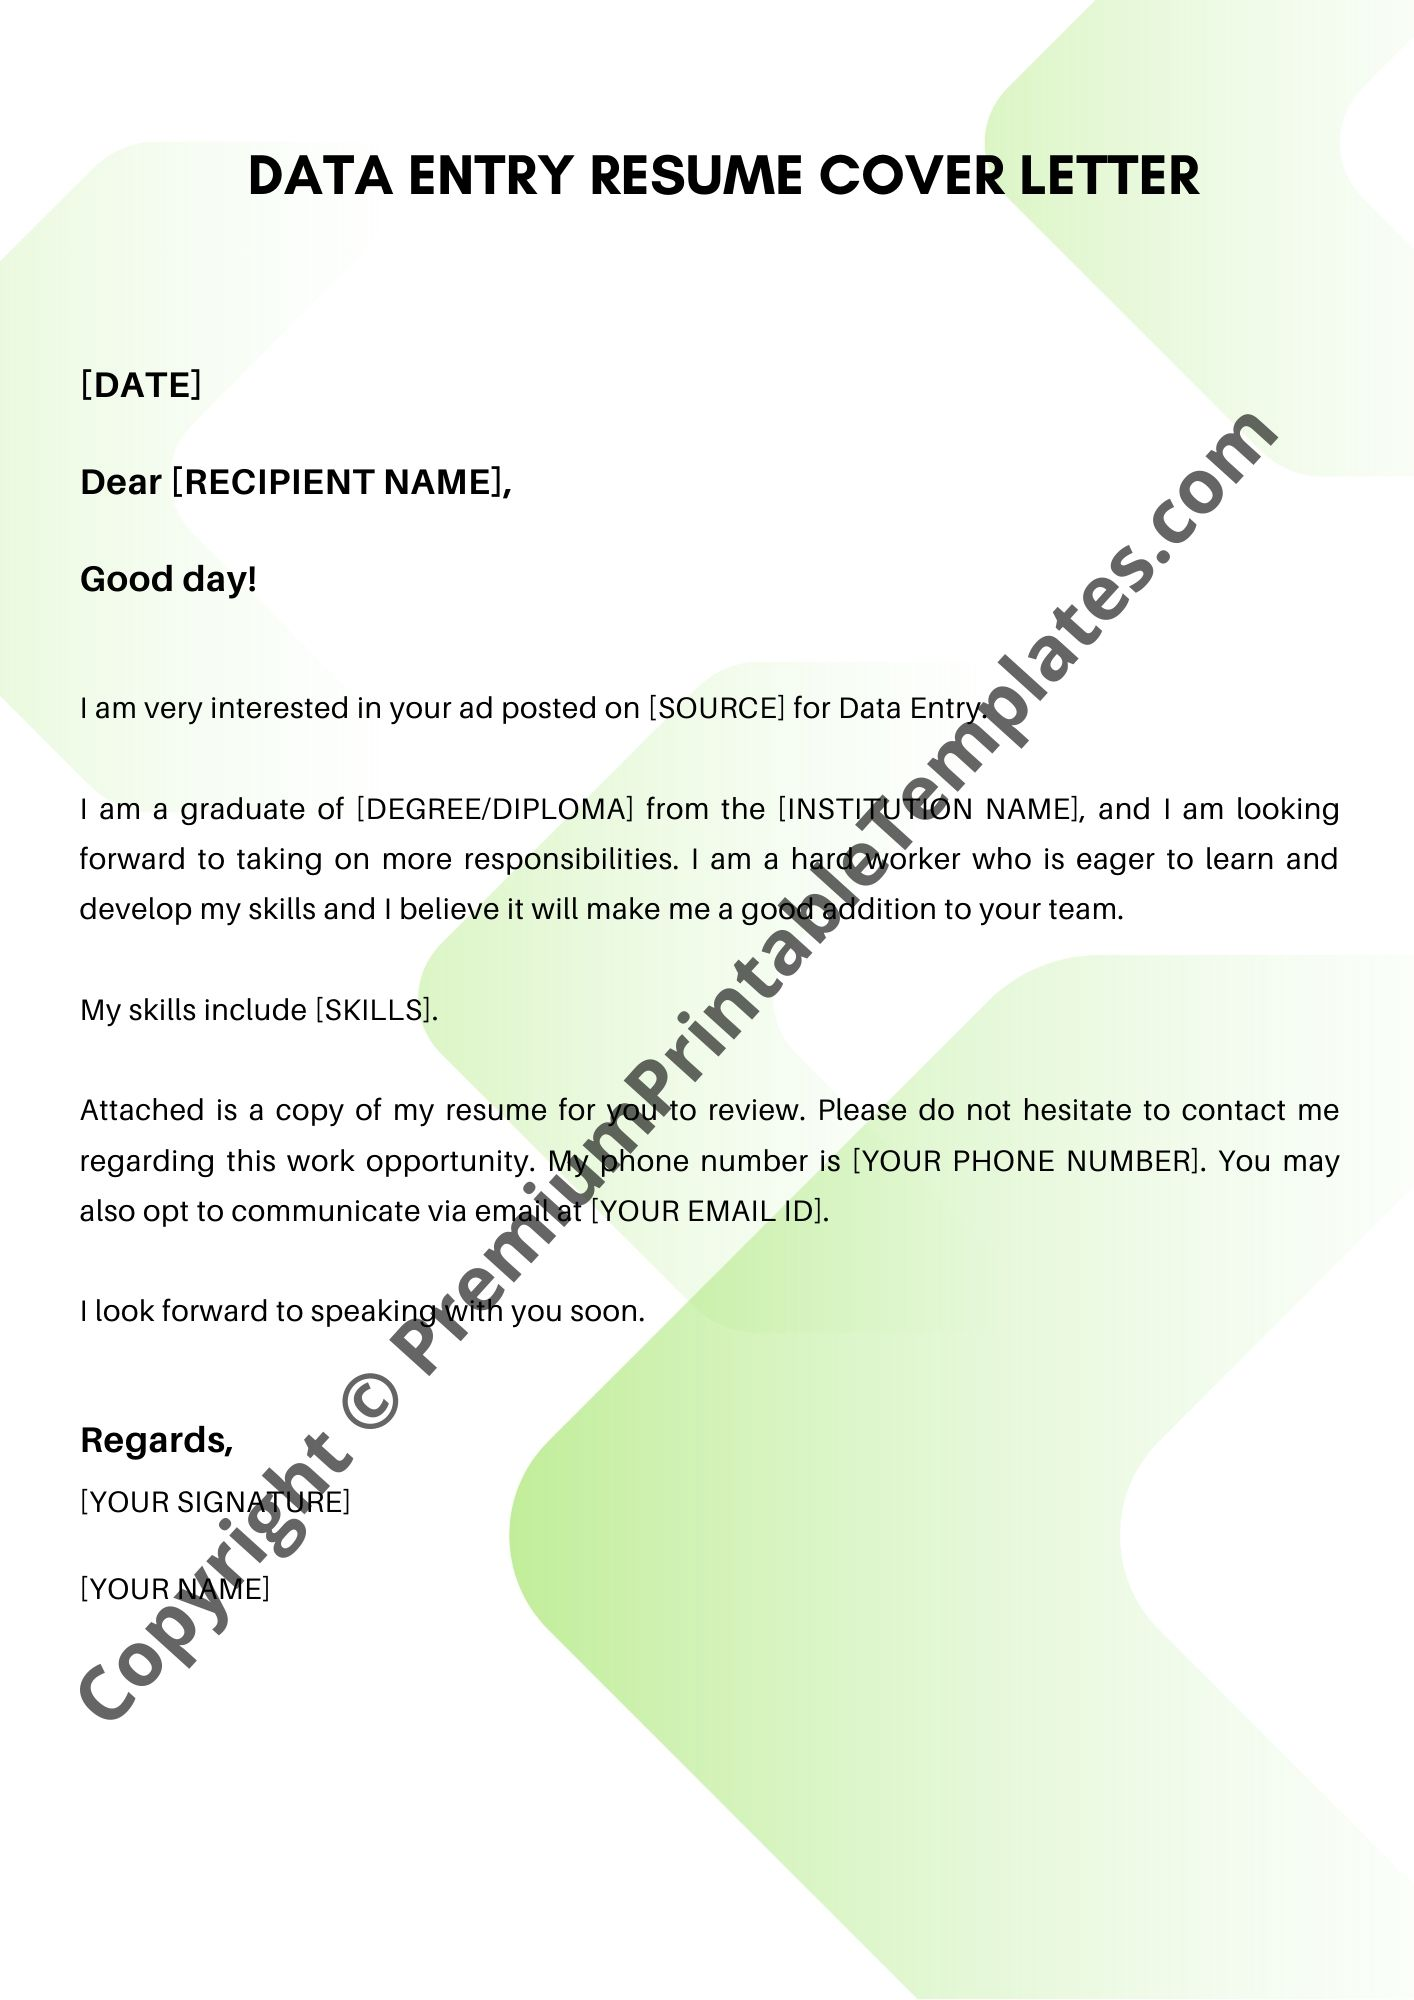 Simple Cover Letter Data Entry Resume Cover Letter Premium